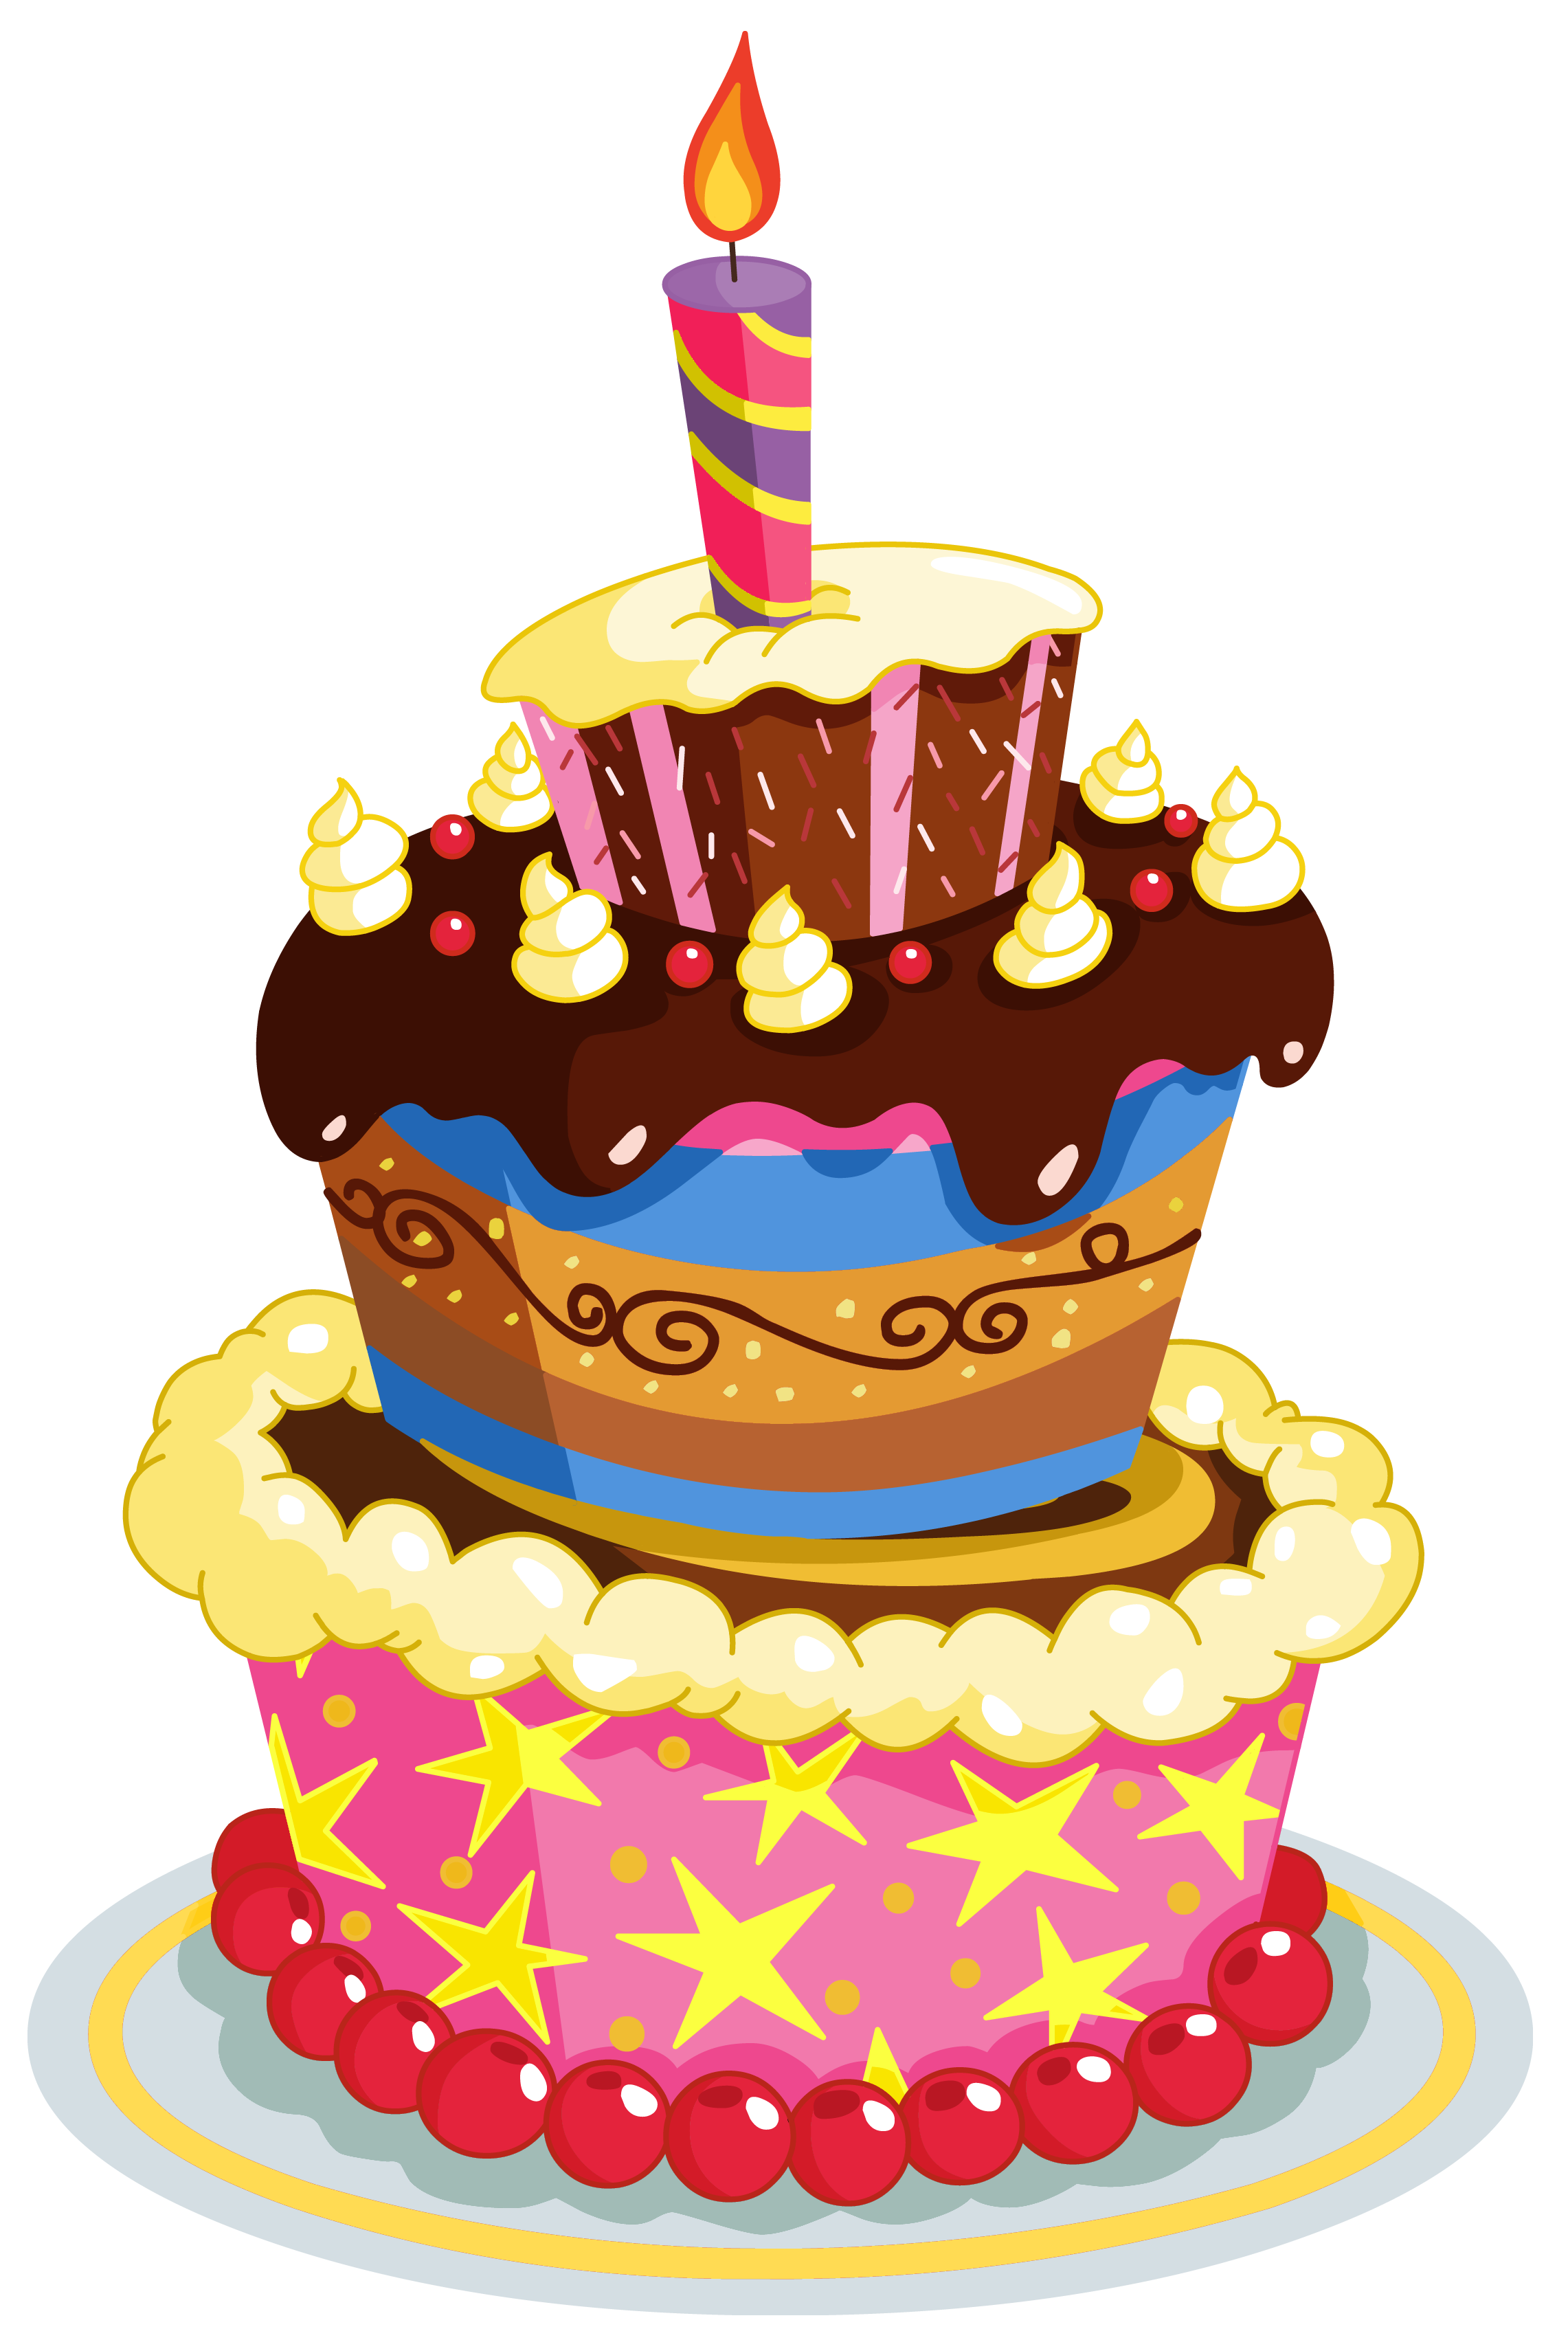 jpg library download Desserts clipart homemade cake. Colorful birthday png clip.